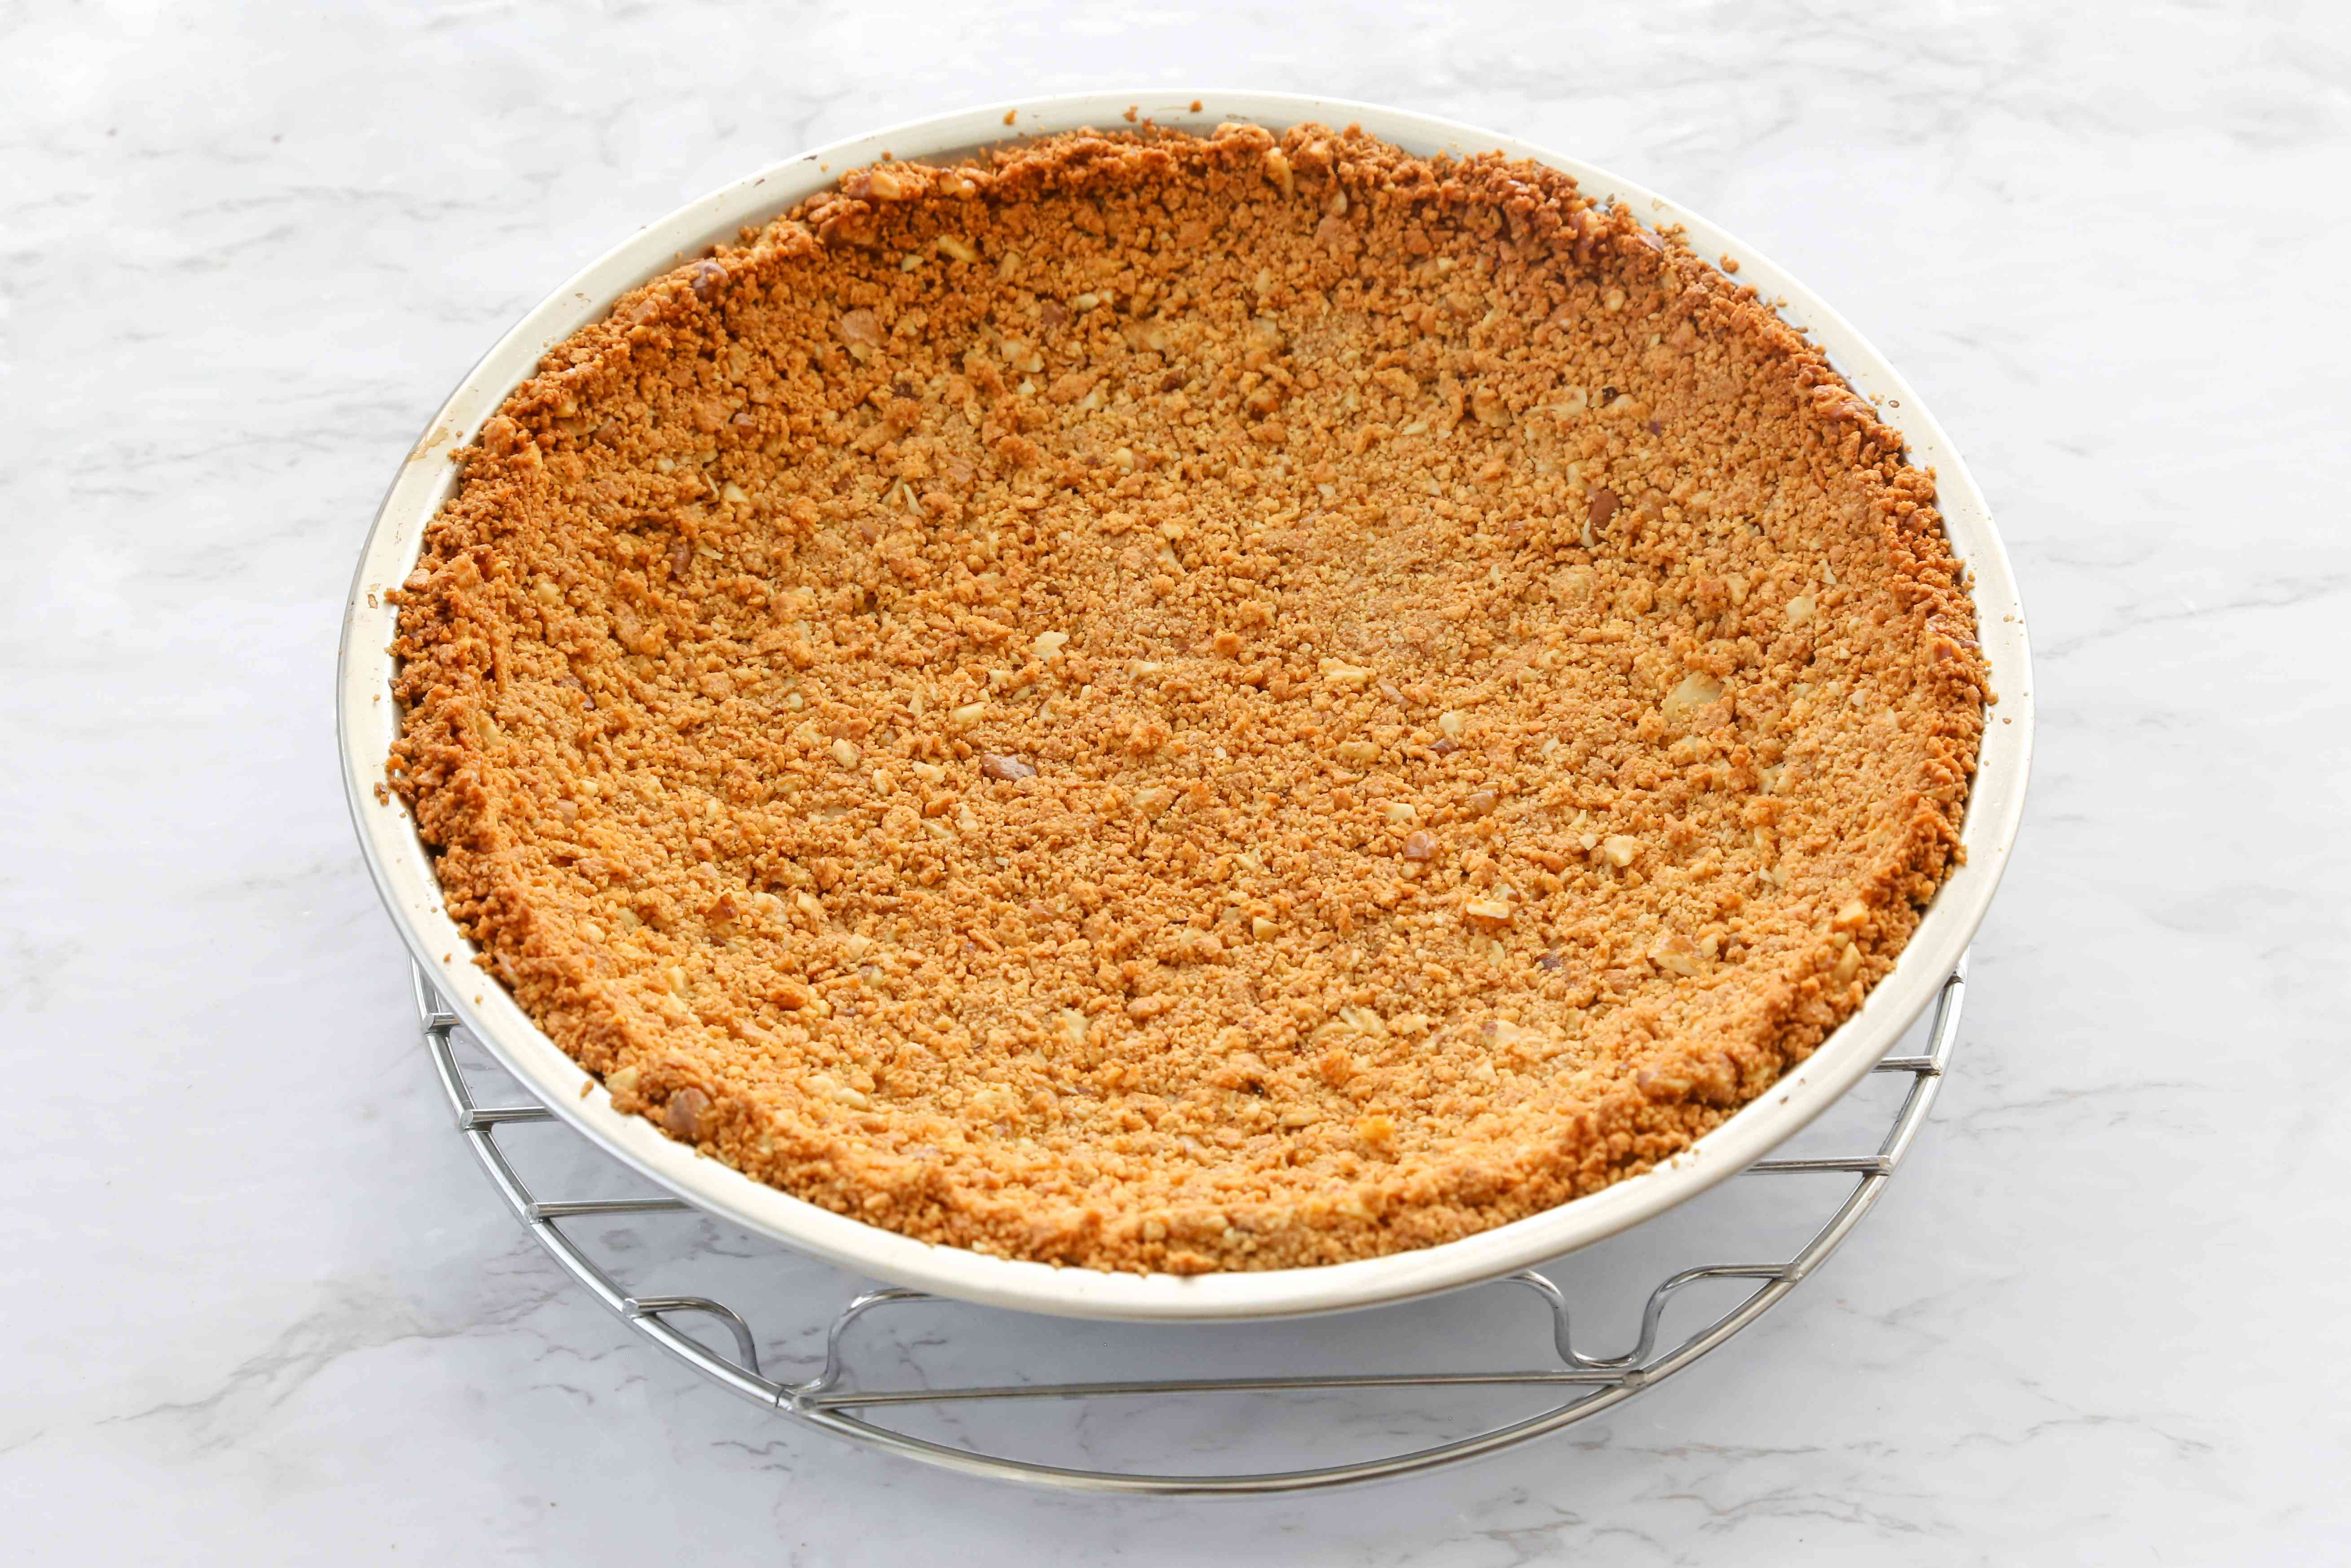 baked pie crust on a cooling rack